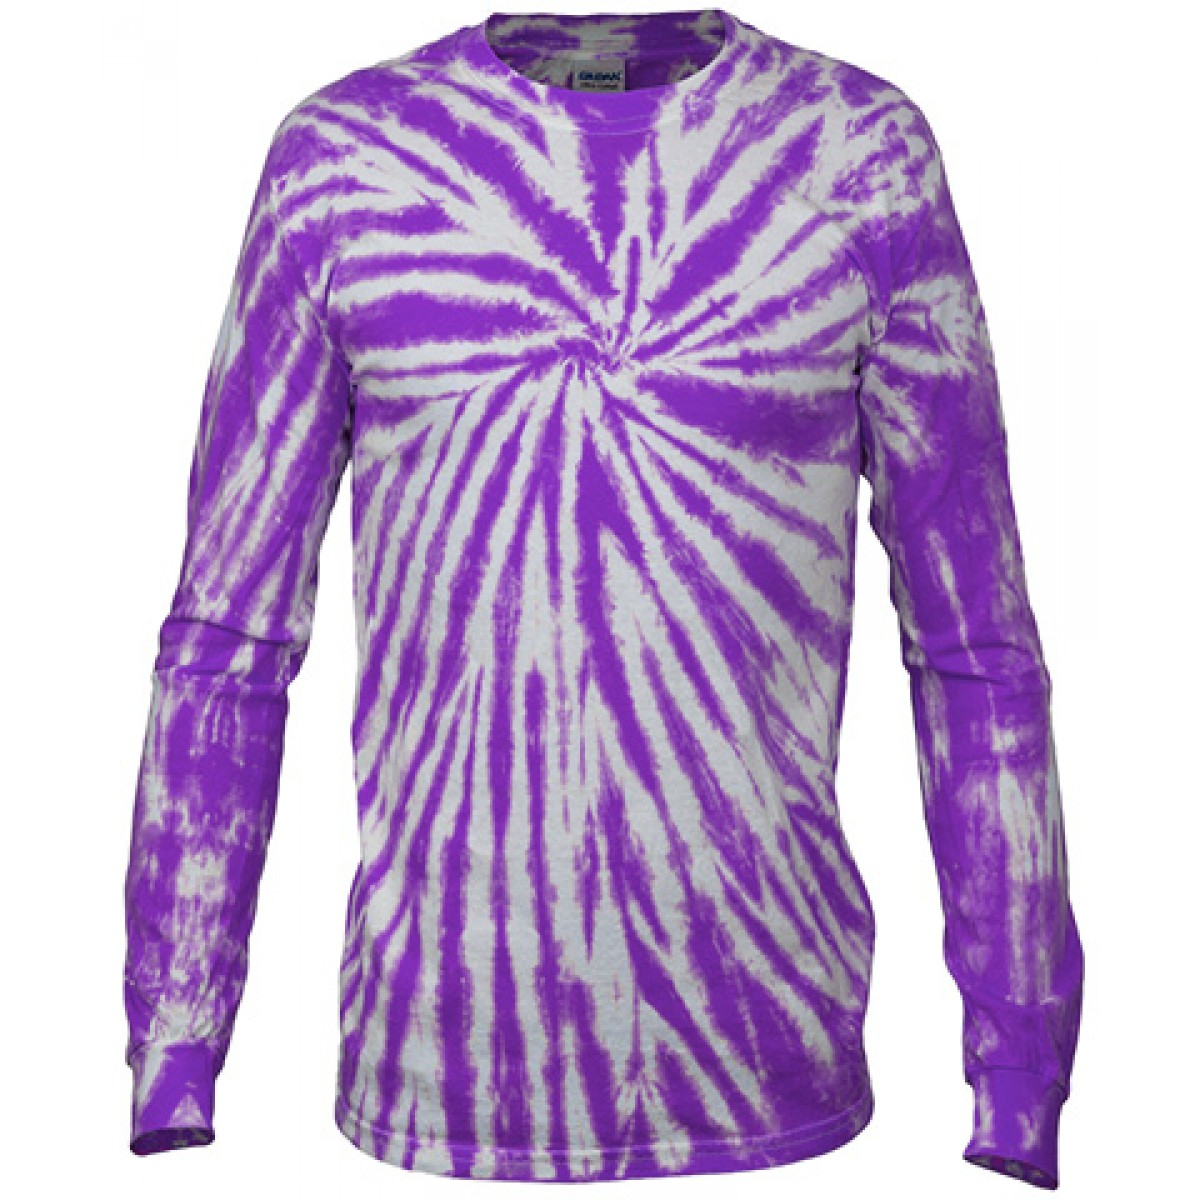 Multi Color Tie-Dye Long Sleeve Shirt -Fuscia-L